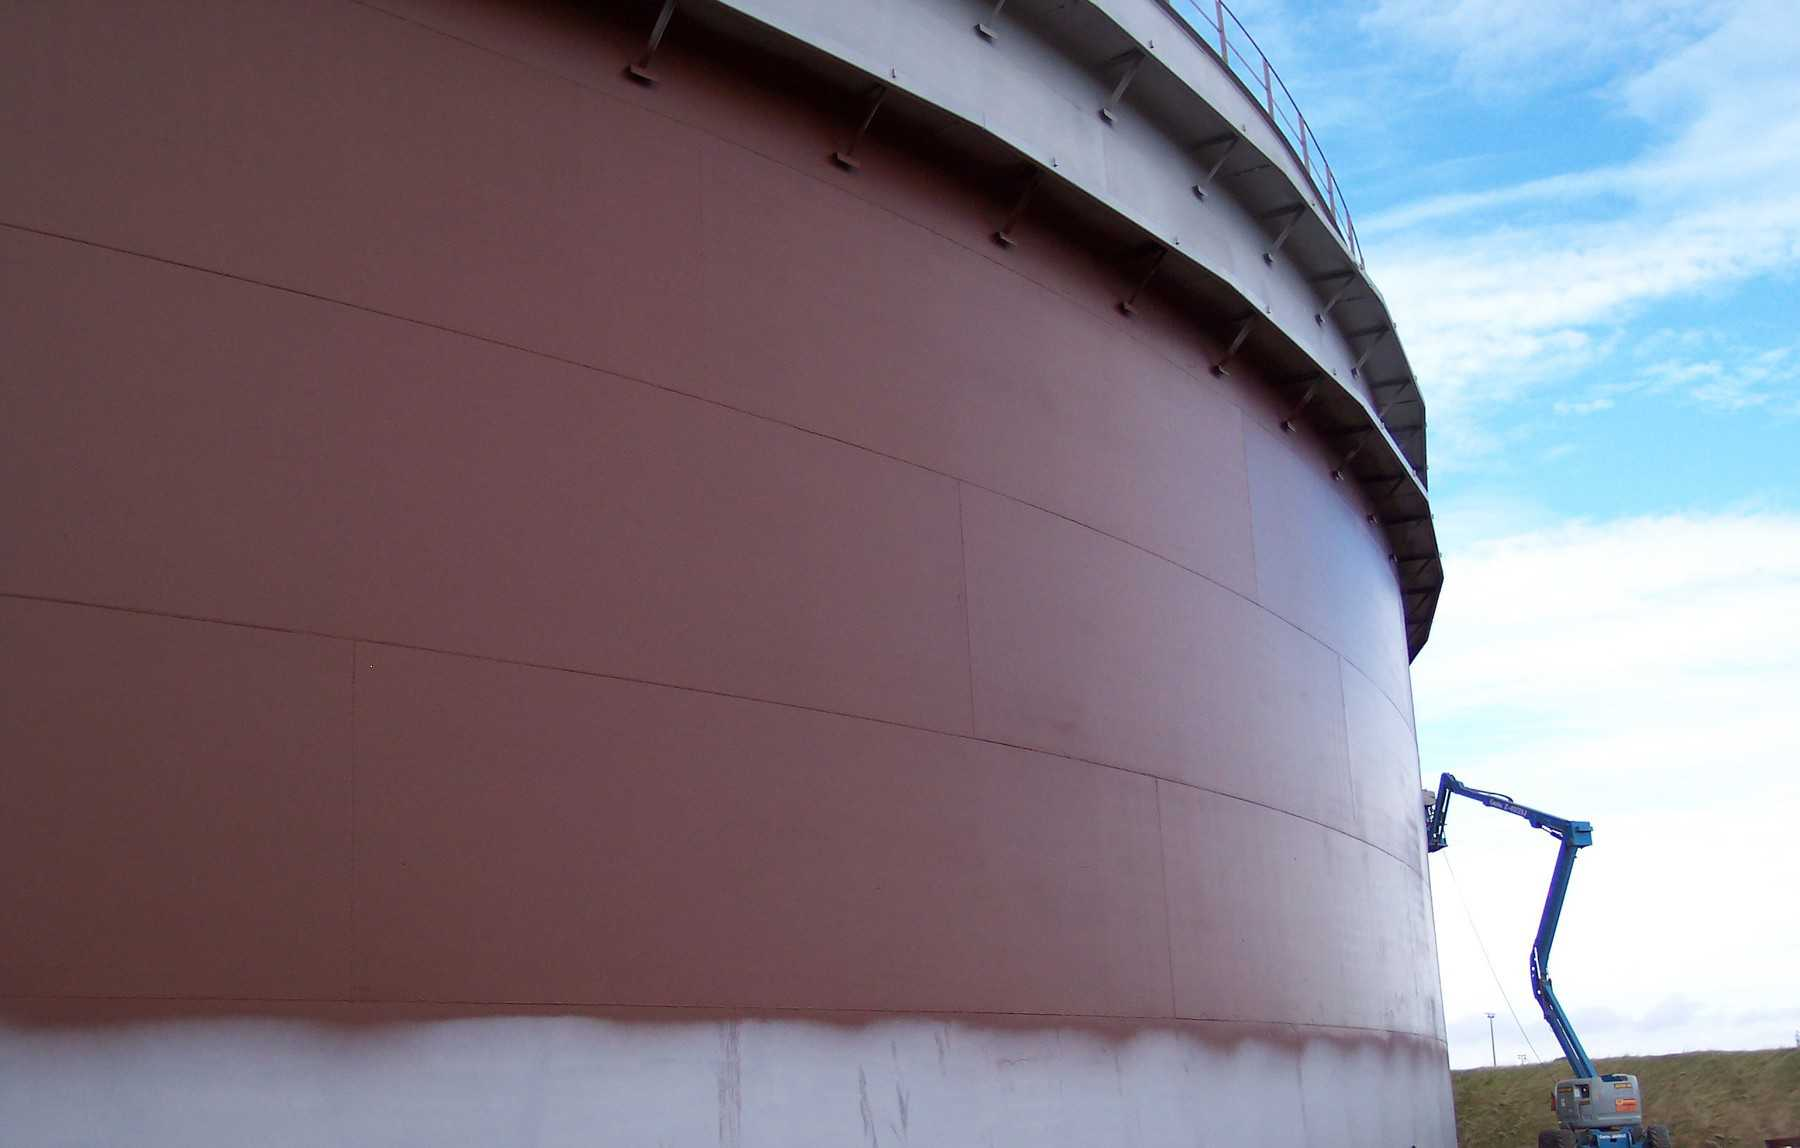 external oil tank painted in dark red with cherry picker